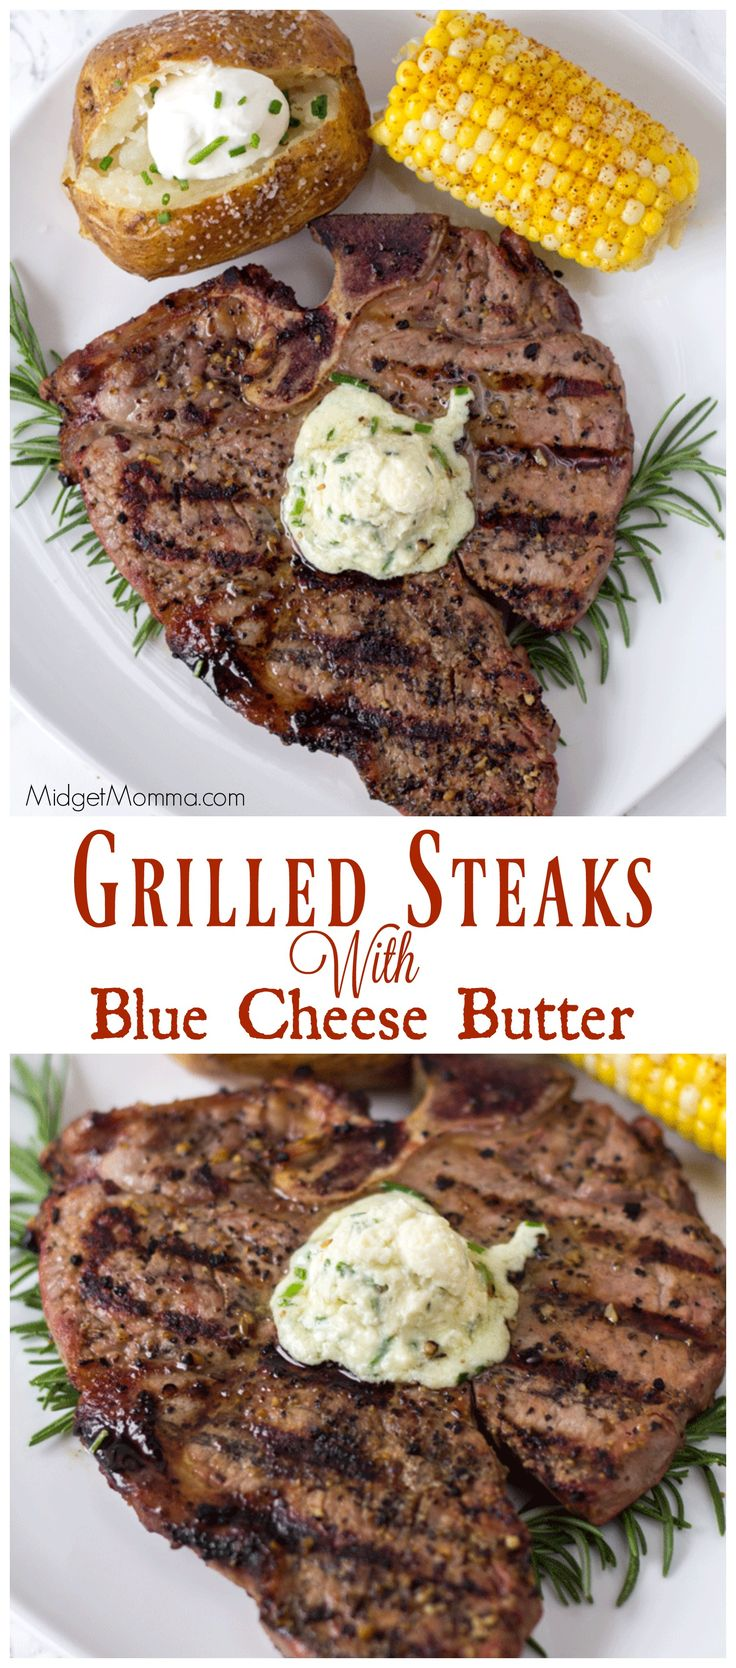 Grilled Steaks with AMAZING Blue Cheese Butter! You are going to want to skip the steak sauce with this one and just enjoy the amazing flavor of the juicy steak paired with the blue cheese butter. Perfect for you summer grilling!